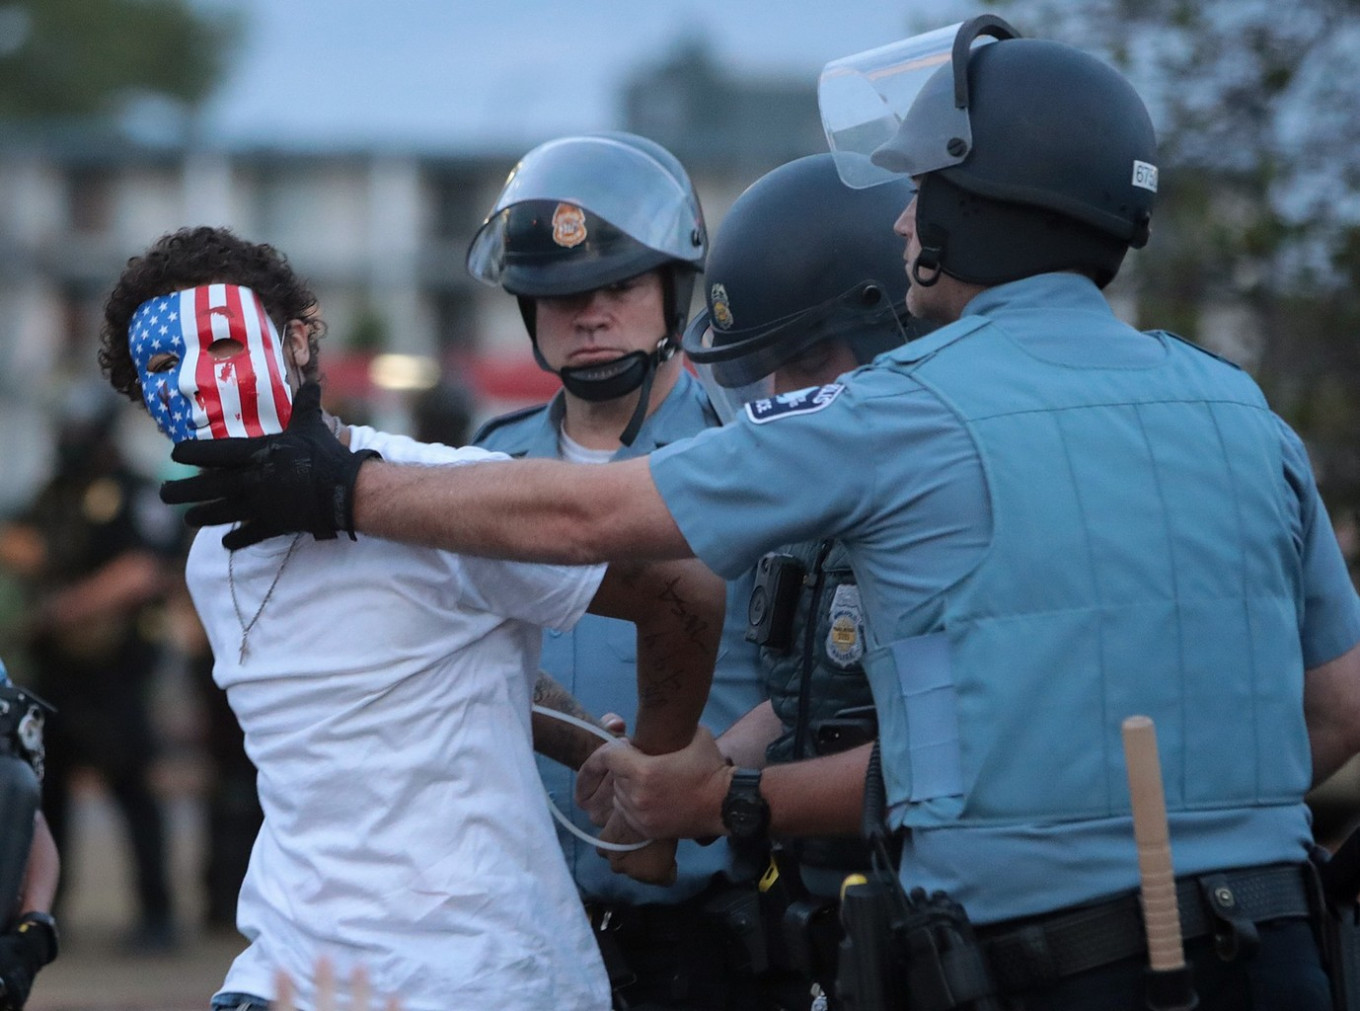 A demonstrator is arressted during a protest against police brutality and the death of George Floyd, on May 31, 2020 in Minneapolis, Minnesota. Protests continue to be held in cities throughout the country over the death of George Floyd, a black man who died while in police custody in Minneapolis on May 25. AFP/Getty Images/Scott Olson